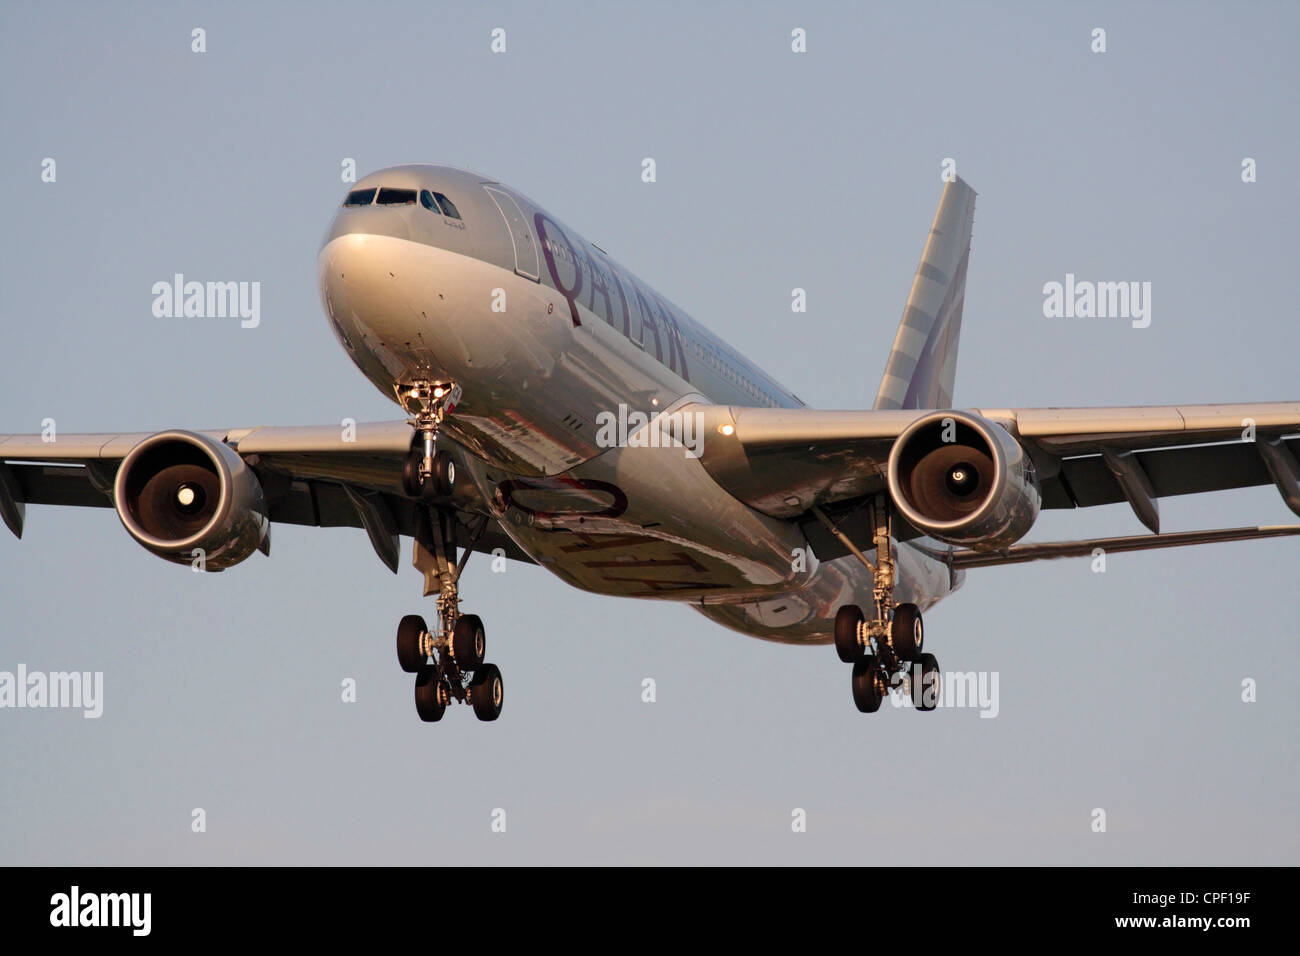 Qatar Airways Airbus A330-200 on arrival at sunset - Stock Image